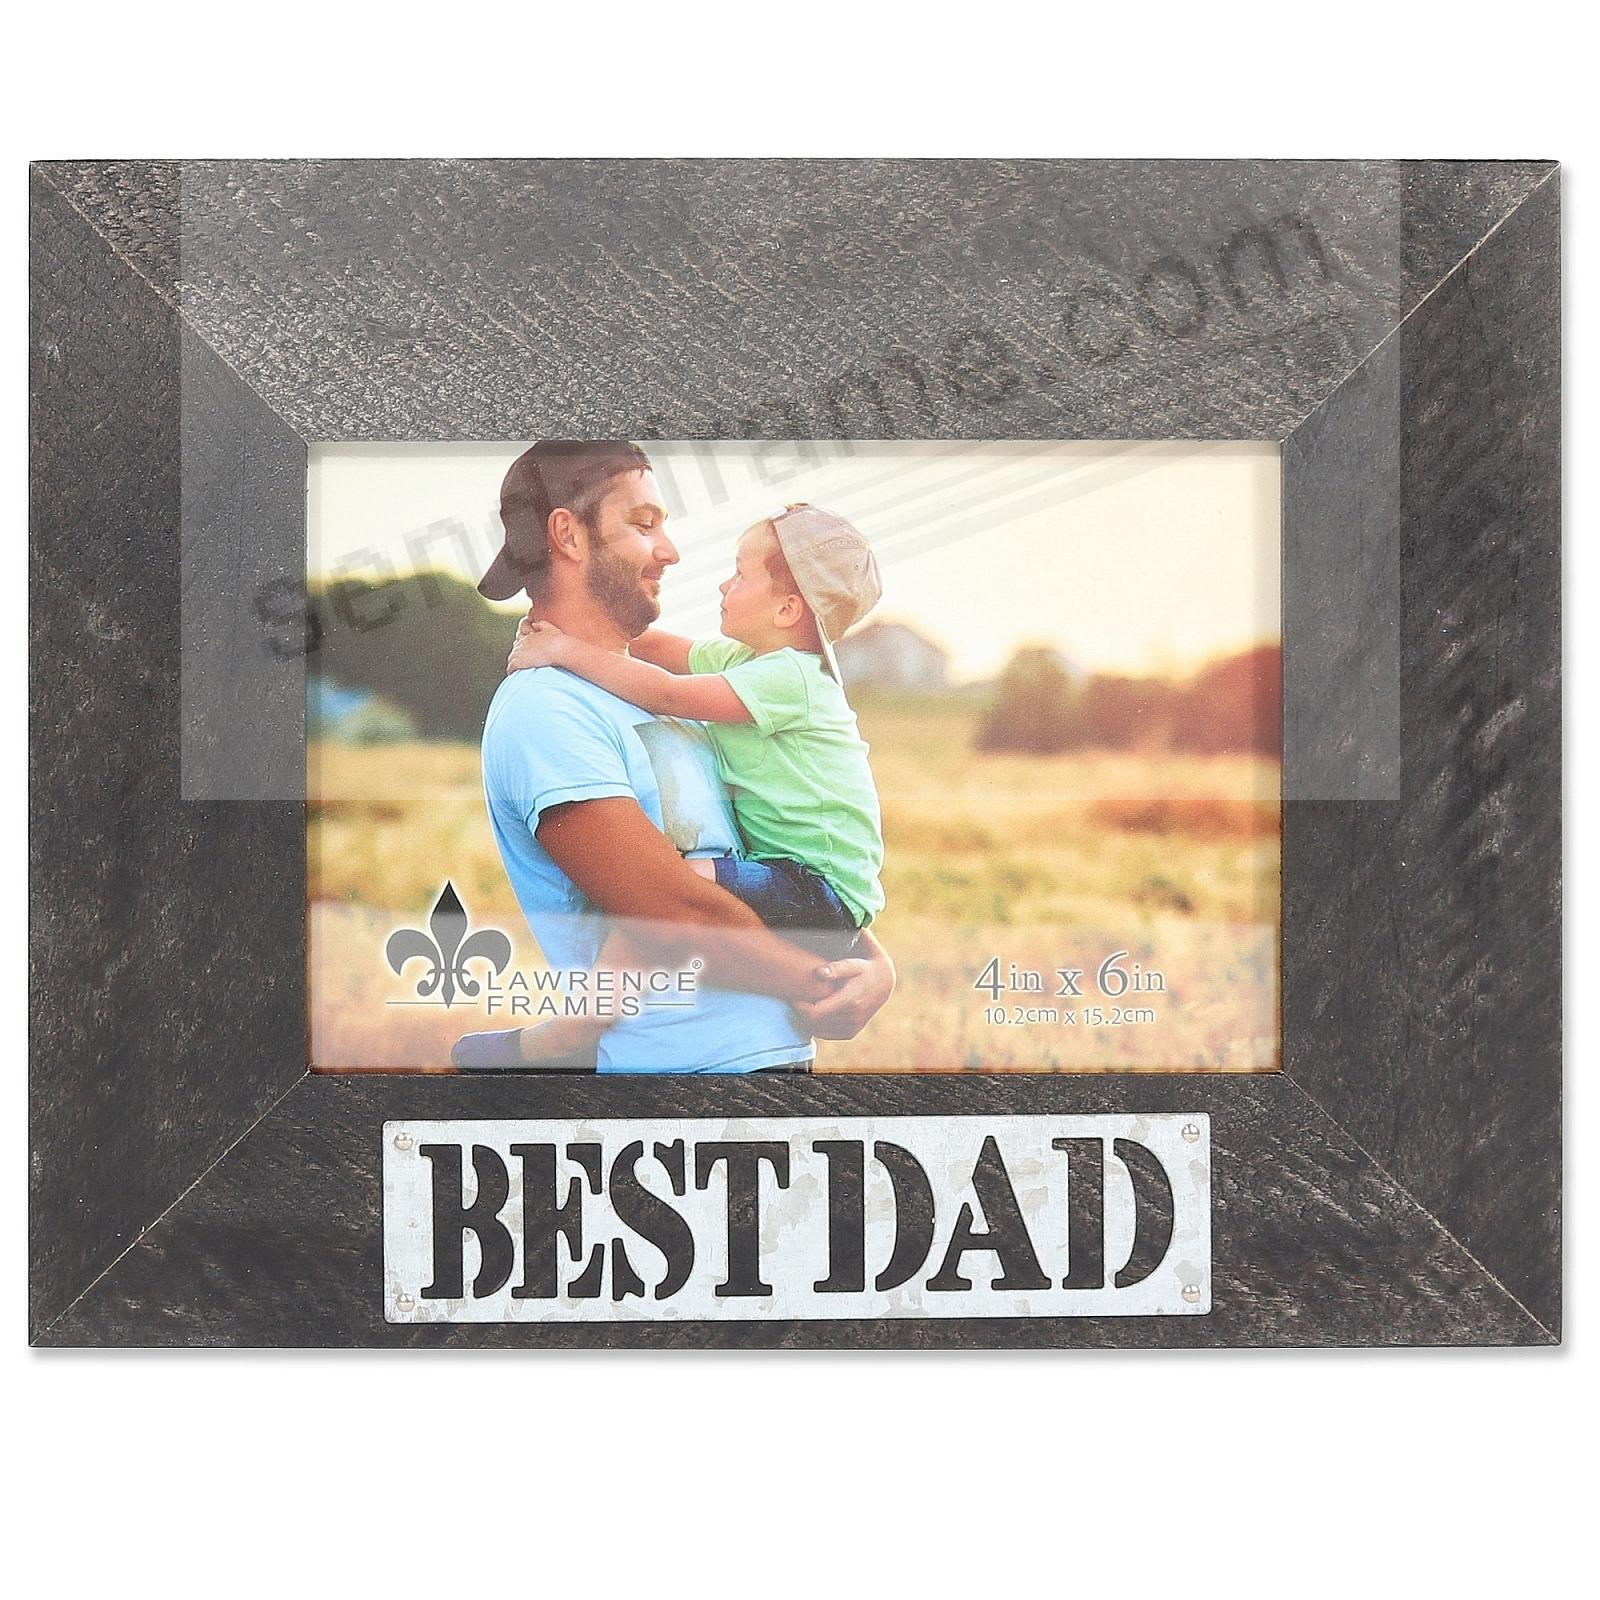 Black Weathered Frame with Galvanized Metallic BEST DAD Plaque